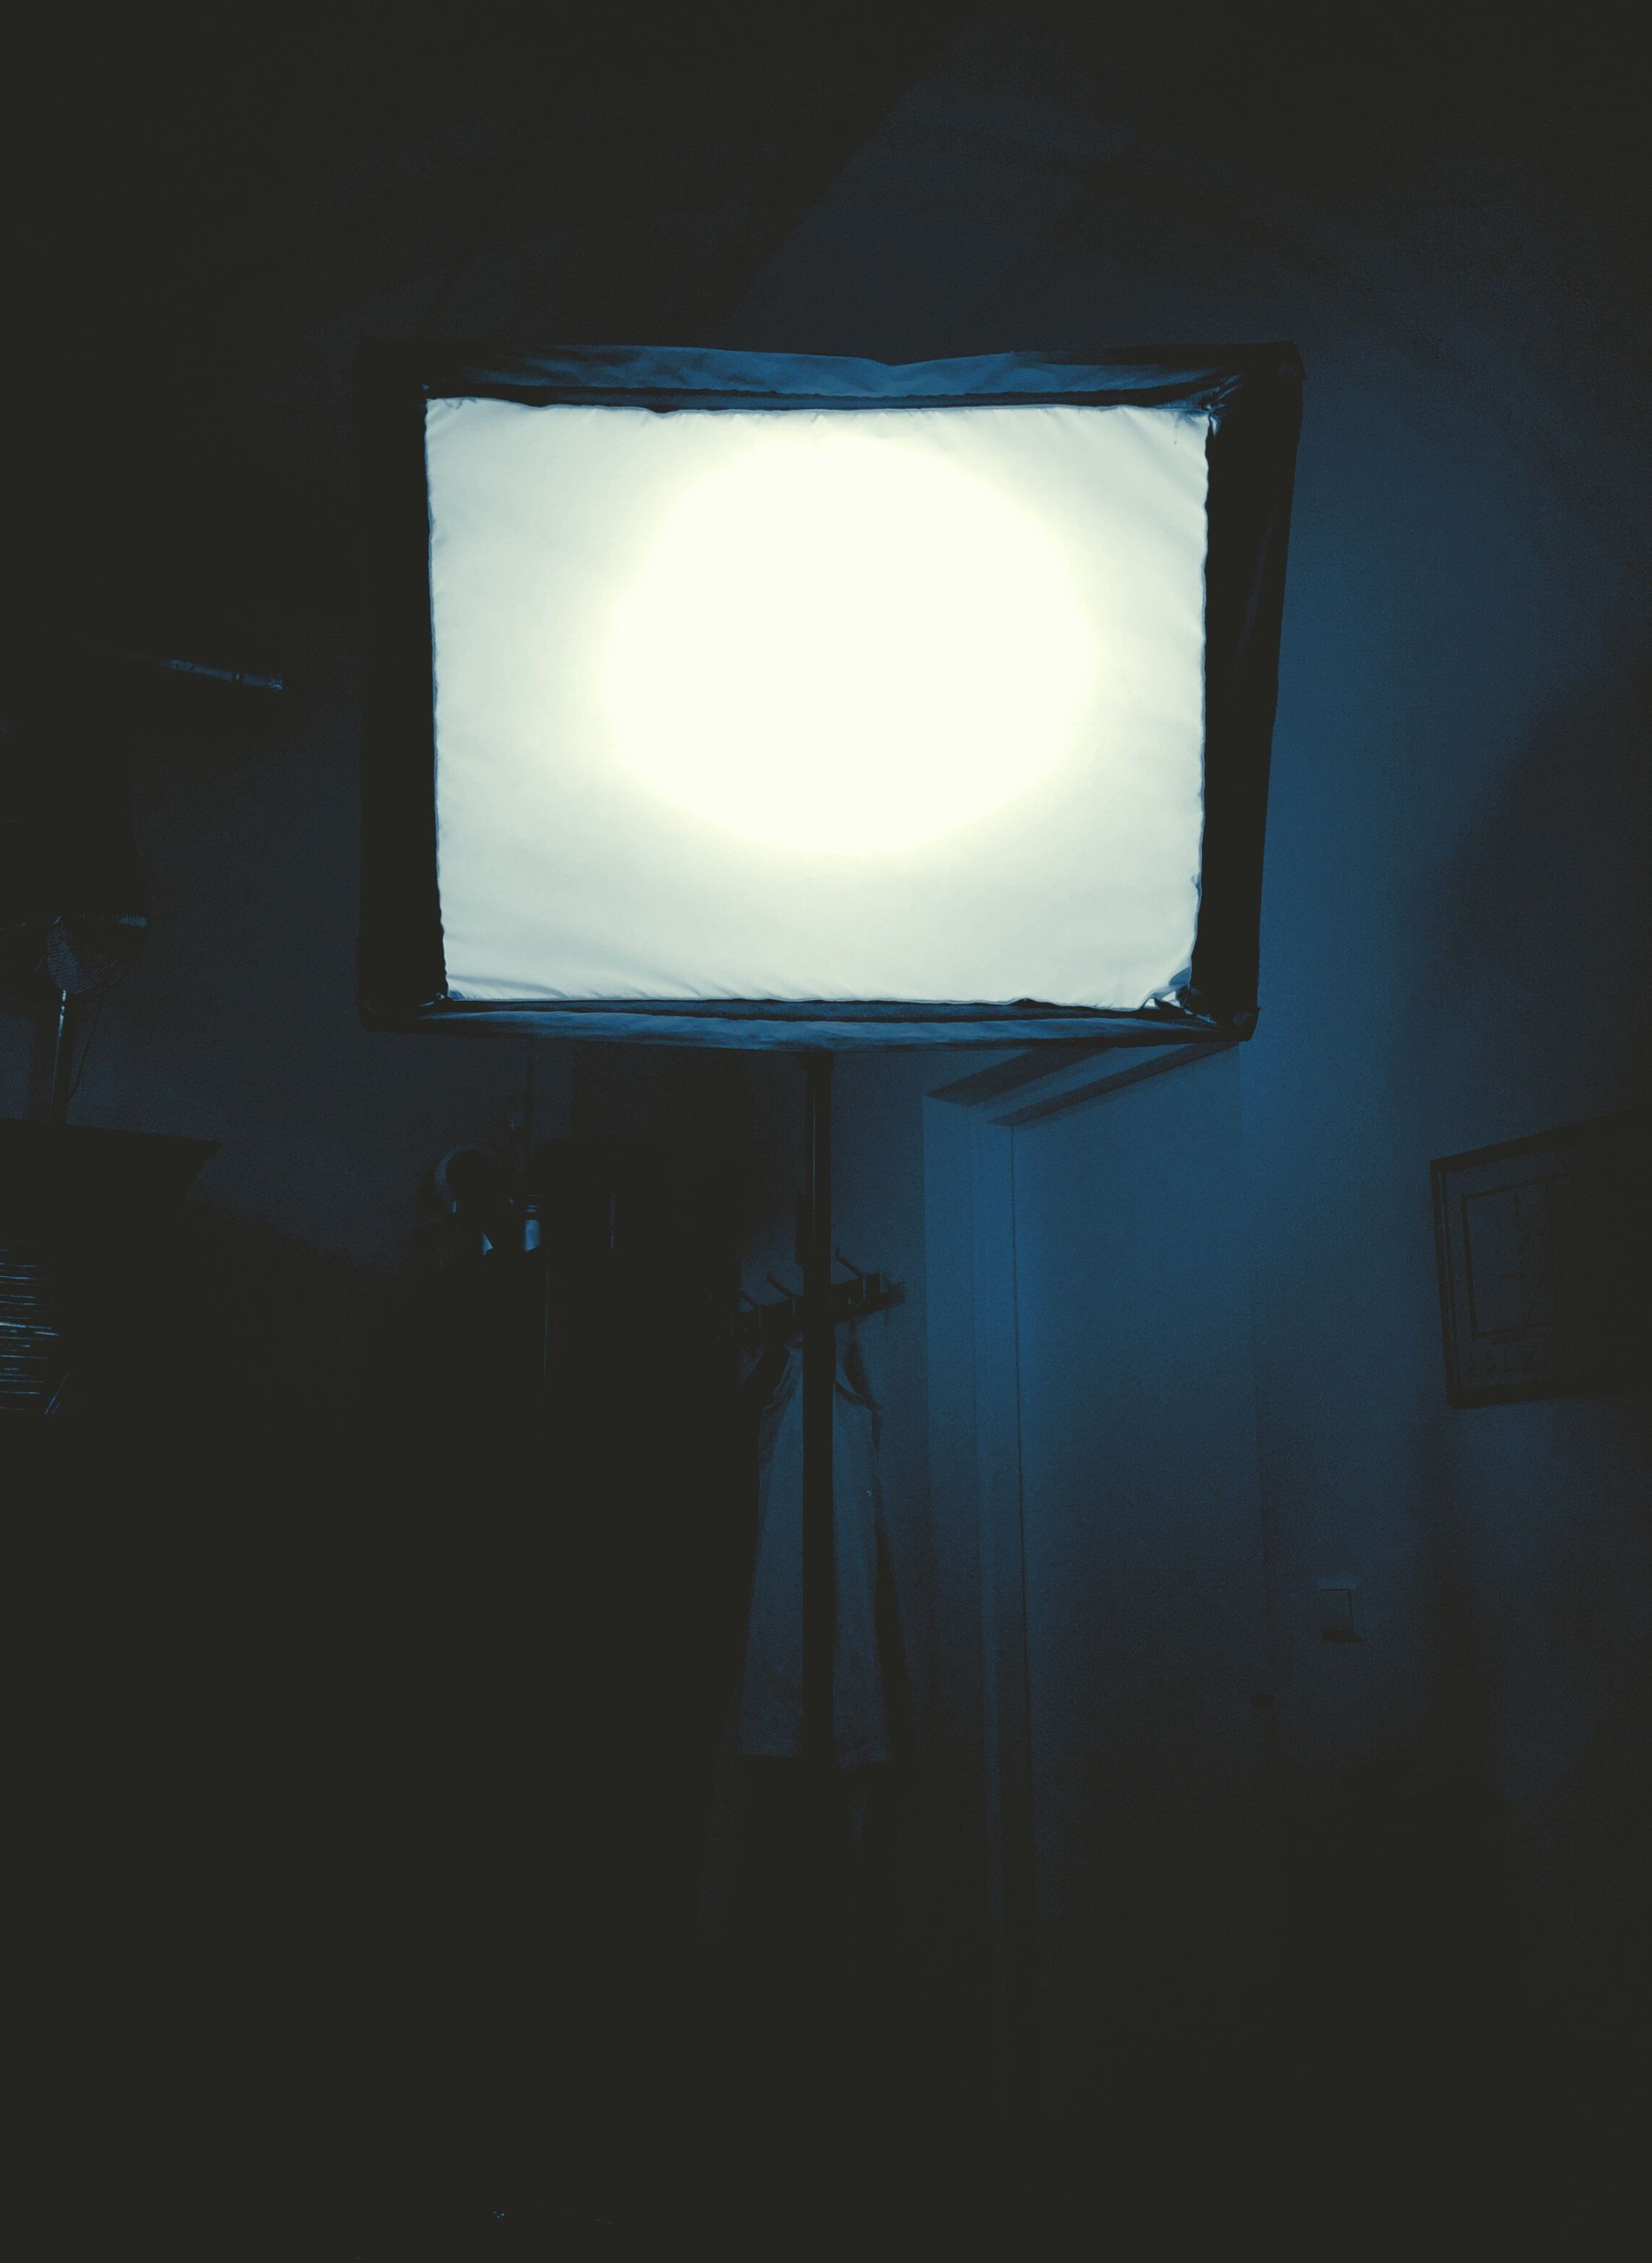 lighting equipment, illuminated, street light, low angle view, home interior, electricity, sky, in front of, electric light, no people, lit